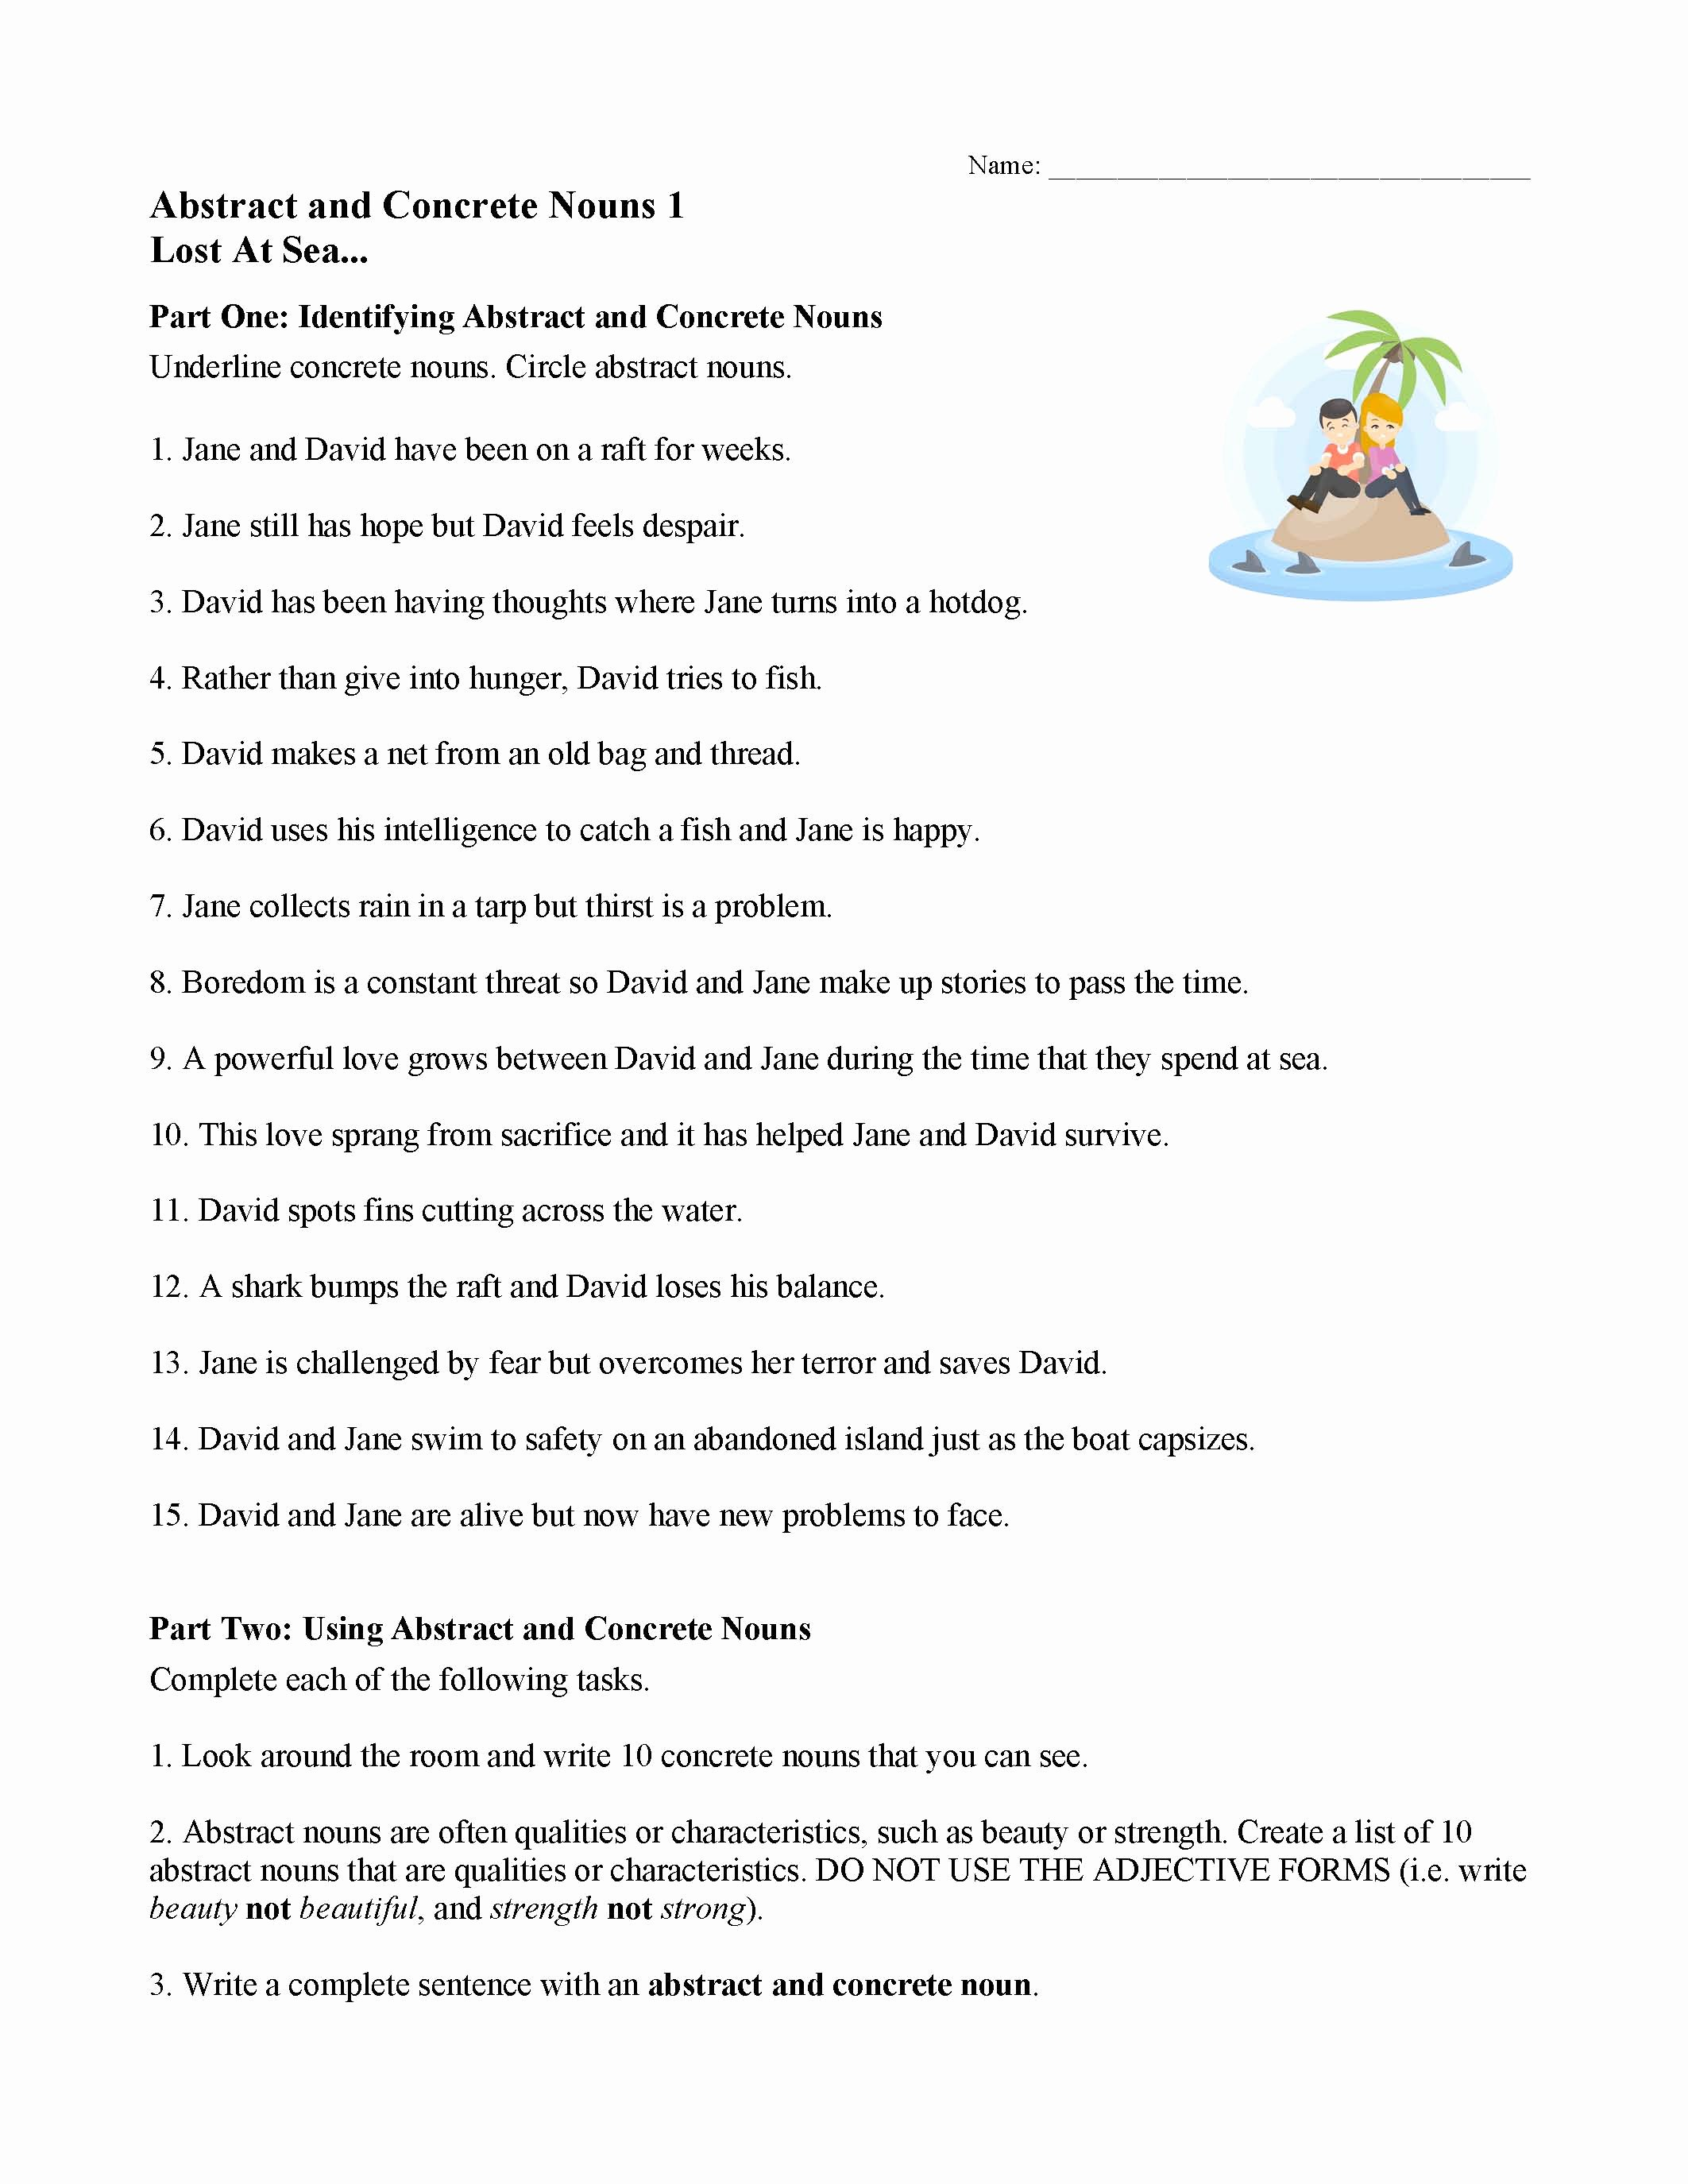 Concrete and Abstract Nouns Worksheet Lovely Concrete and Abstract Nouns Worksheet